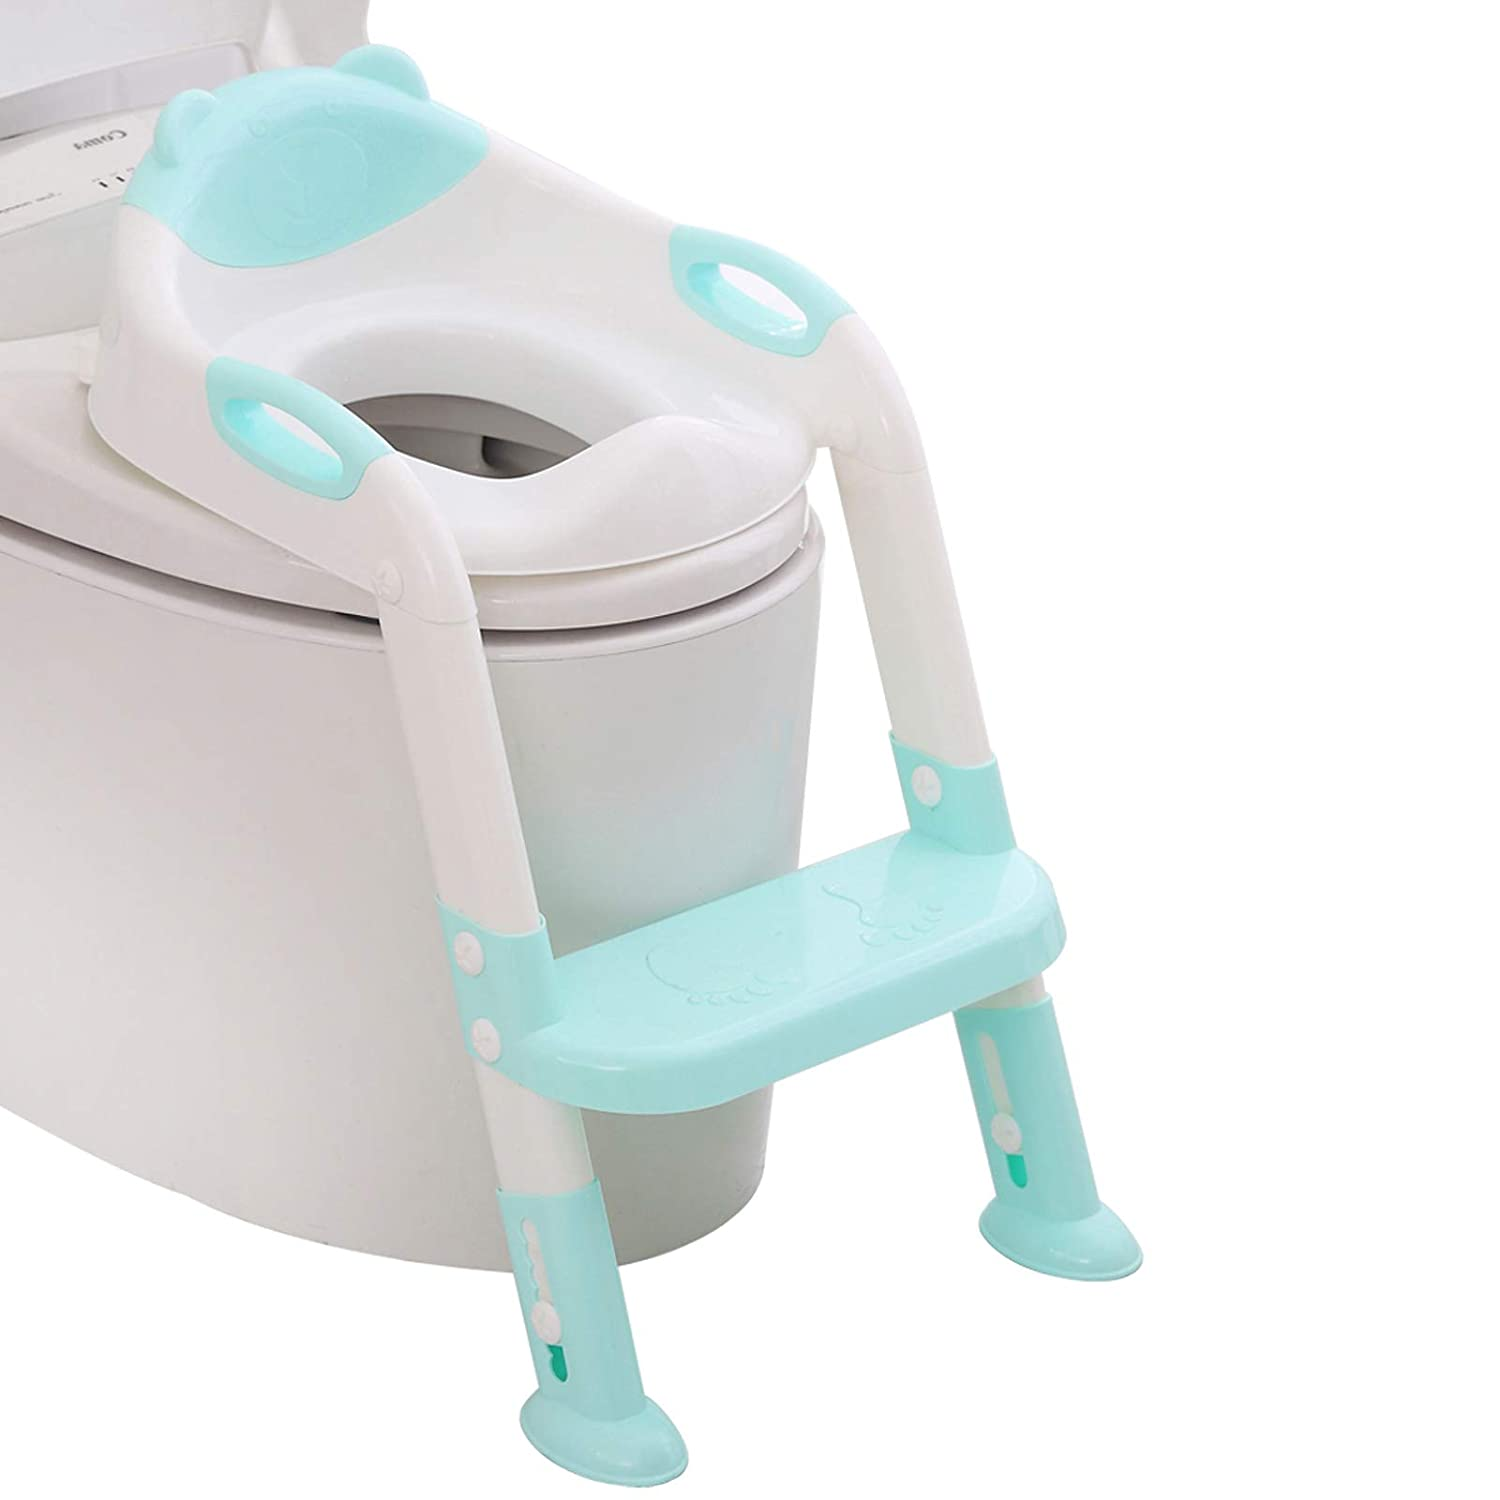 Greensen Childrens Toilet Seat with Stairs Toilet Seat Toilet Trainer Childrens Toilet Seat Foldable Potty Adjustable Training Seat with PU Cushion and Handles Potty for Children